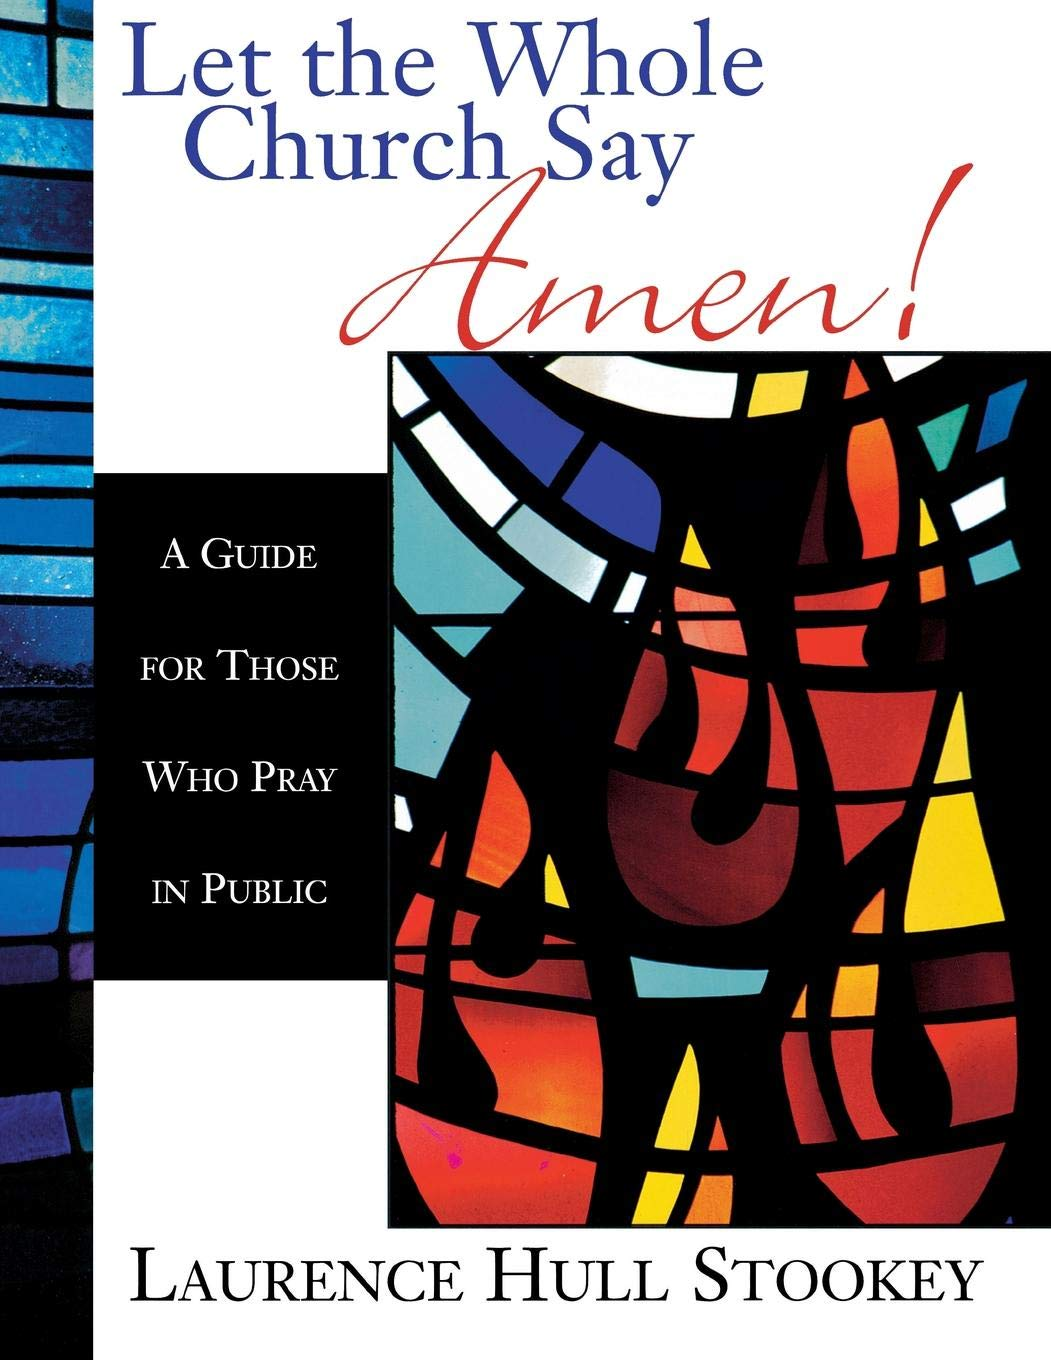 Let the Whole Church Say Amen!: A Guide for Those Who Pray in Public by Abingdon Press